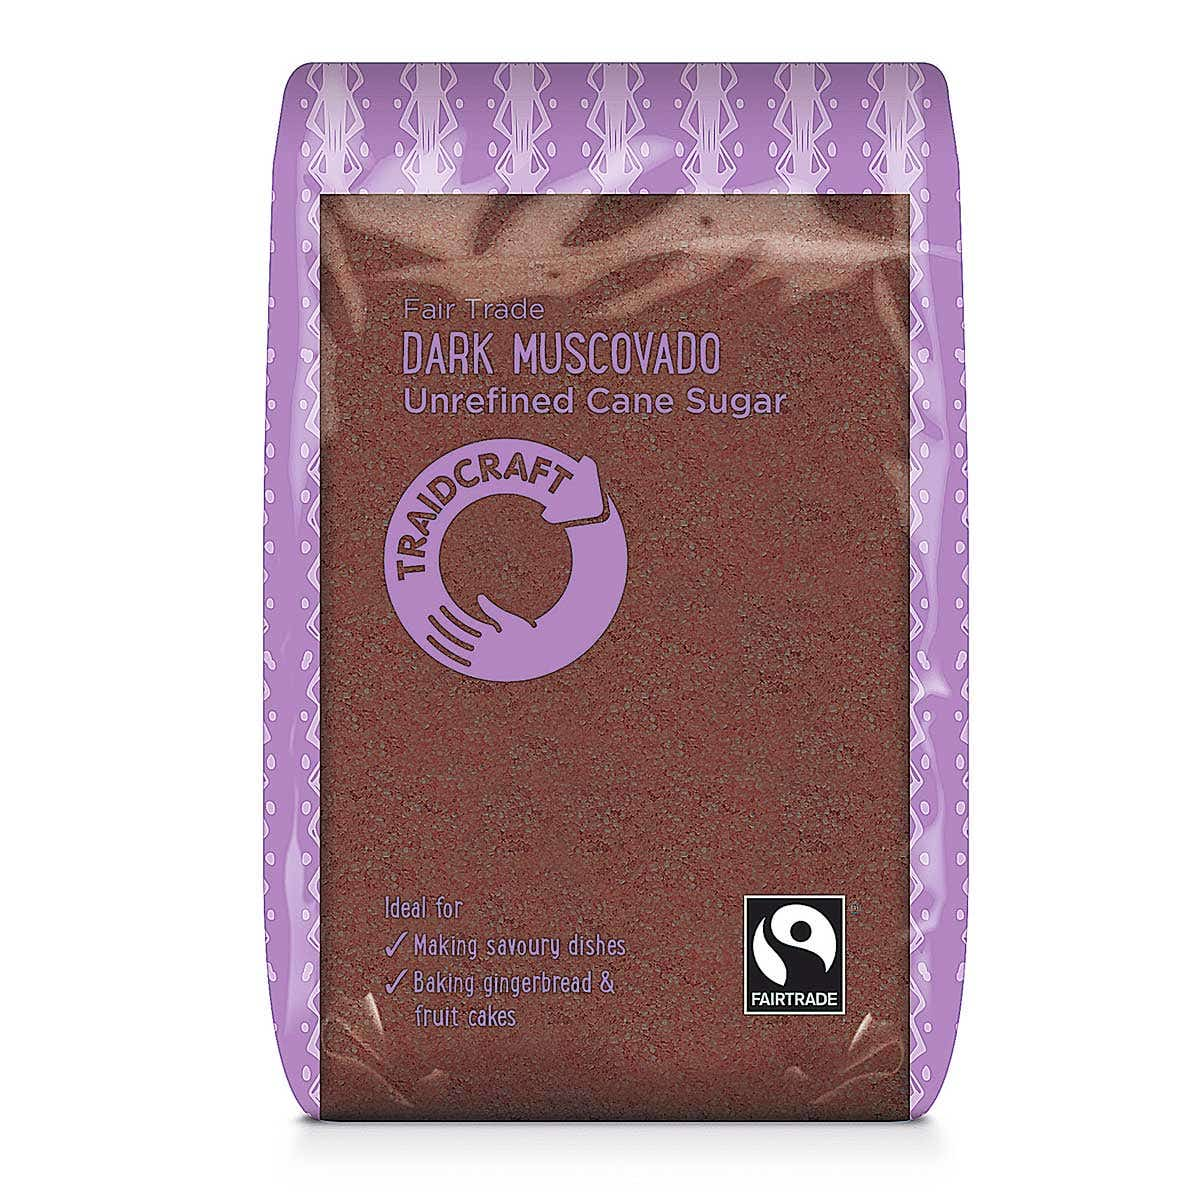 Traidcraft Dark Muscovado Sugar (6x500g) CASE